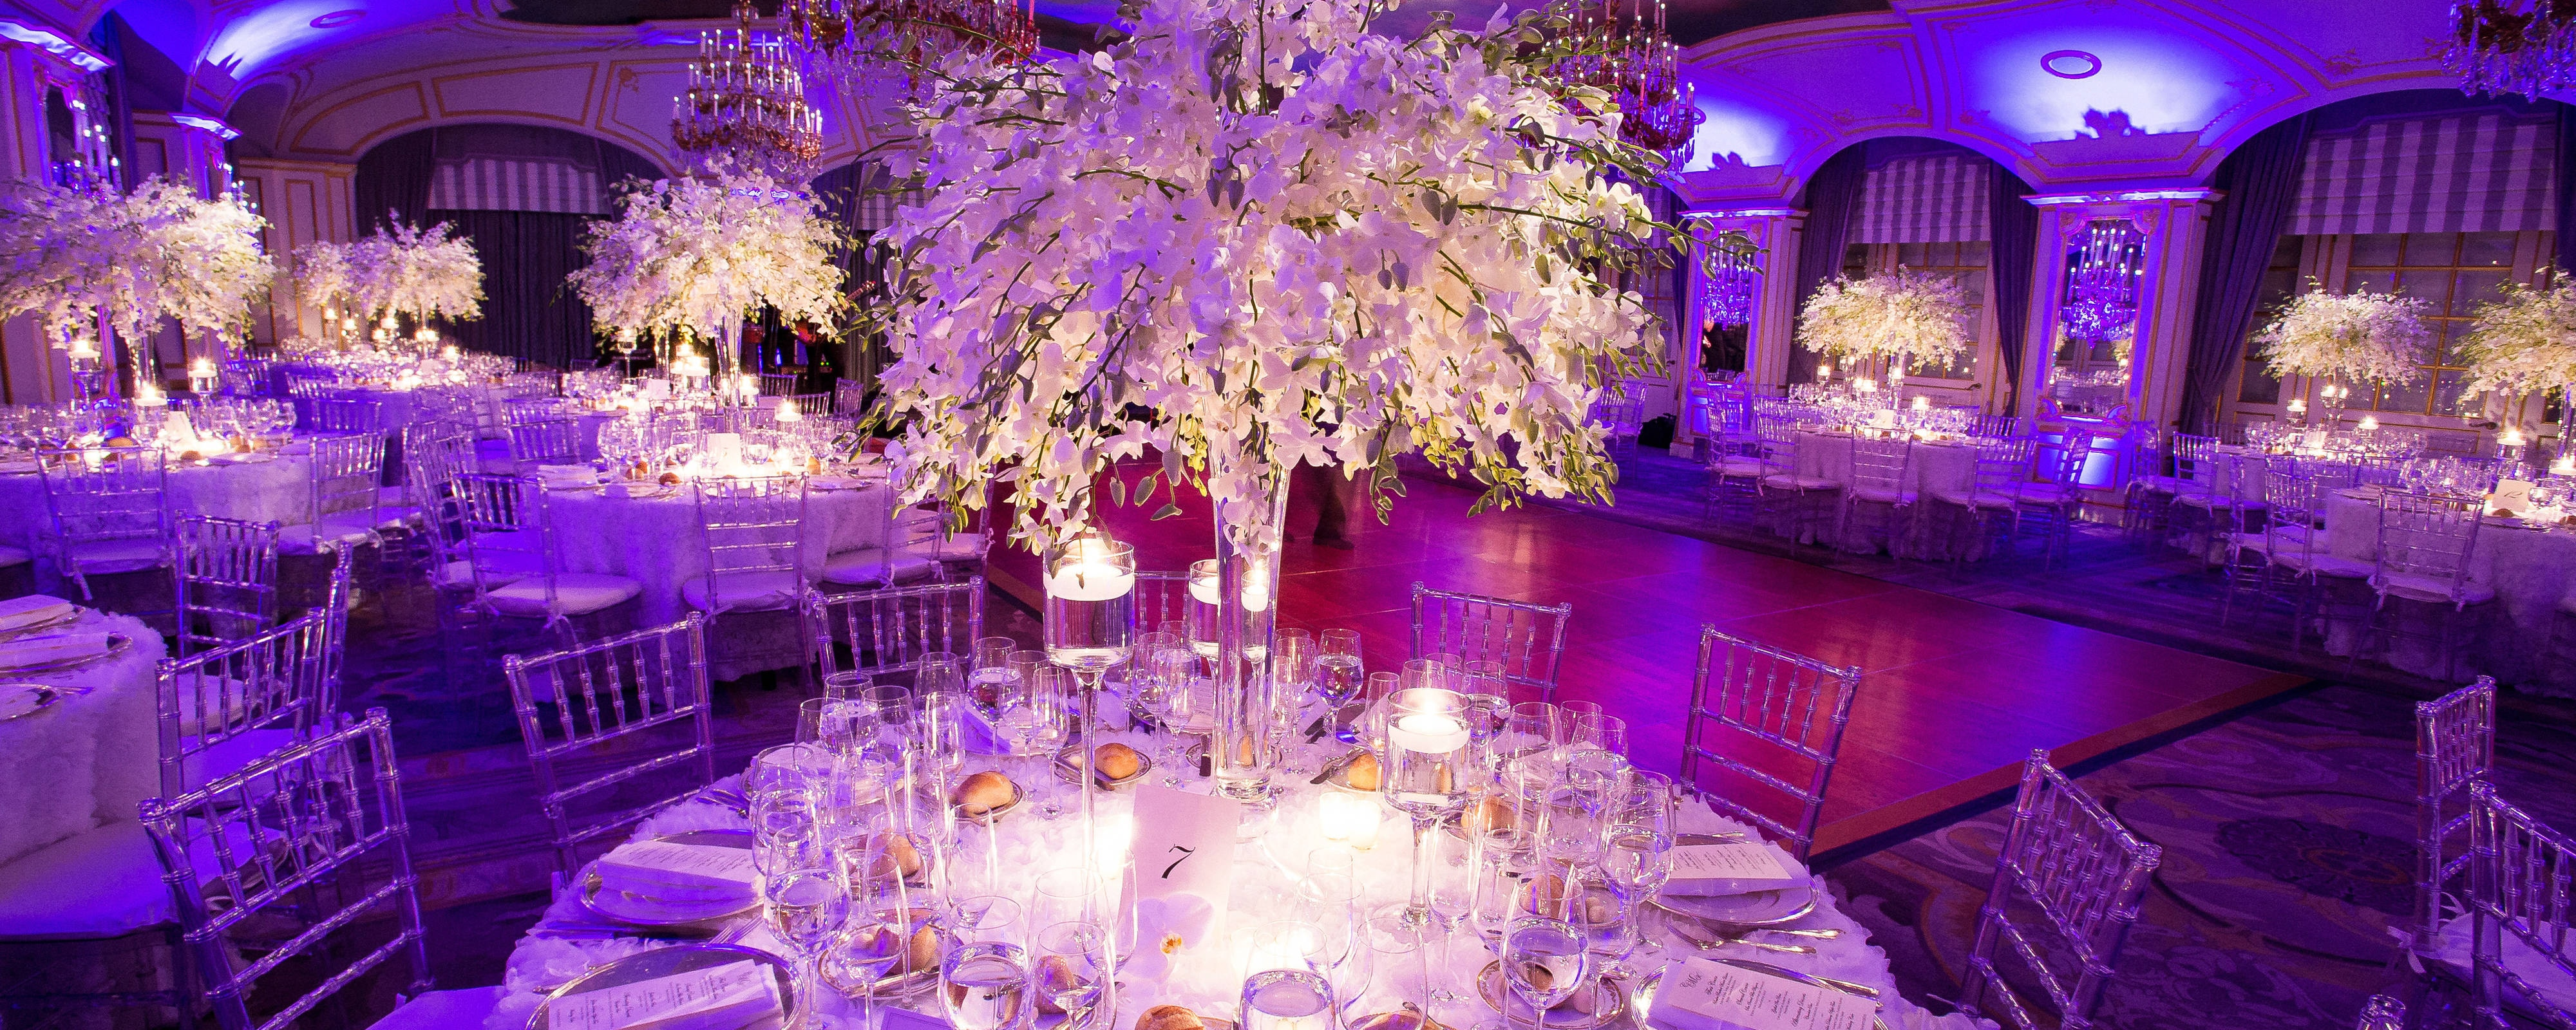 Wedding planning in New York at the The St. Regis New York